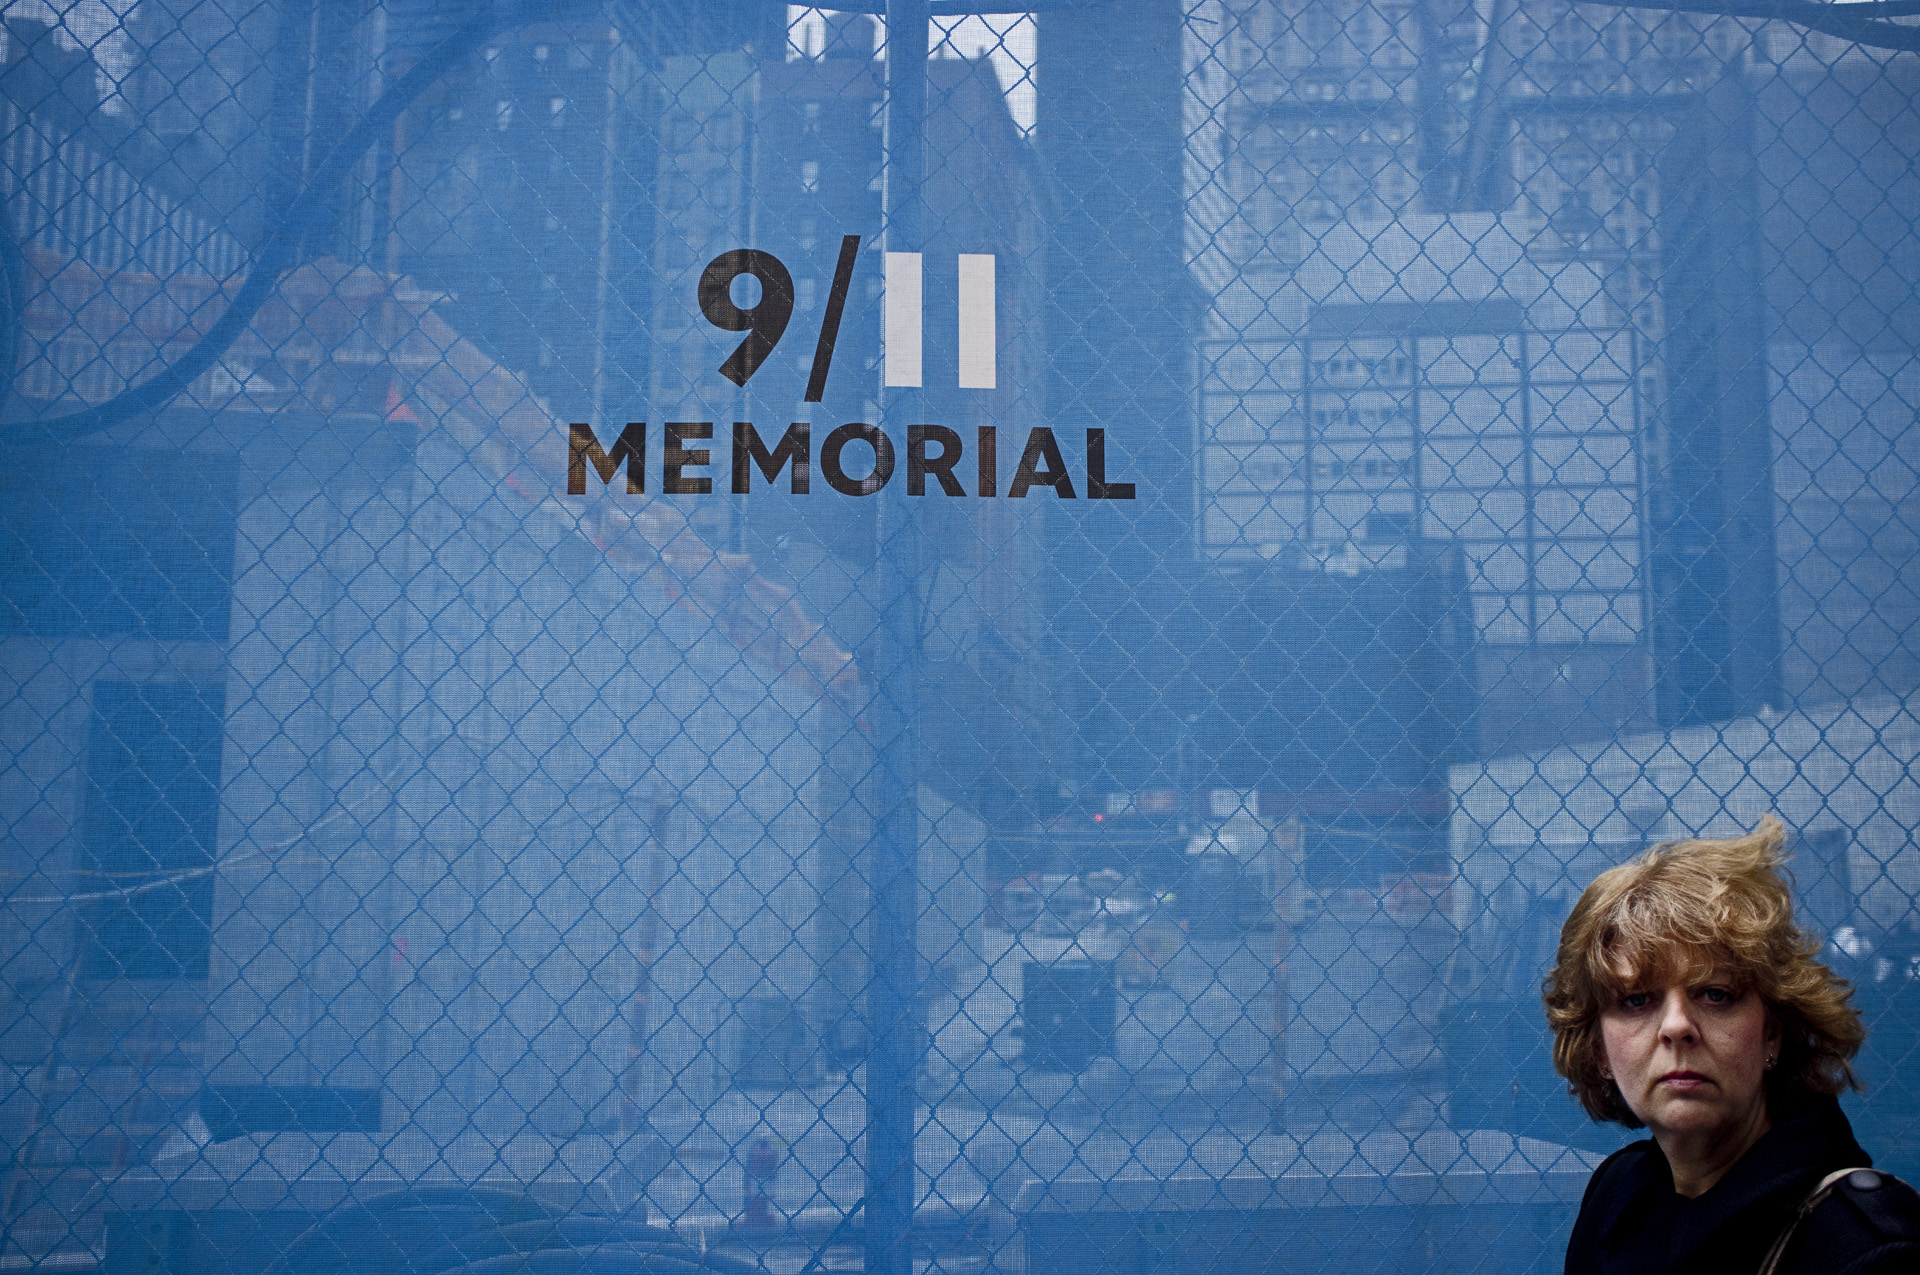 NEW YORK 9/11 MEMORIAL GROUND ZERO DANS LE QUARTIER DE WALL STREET